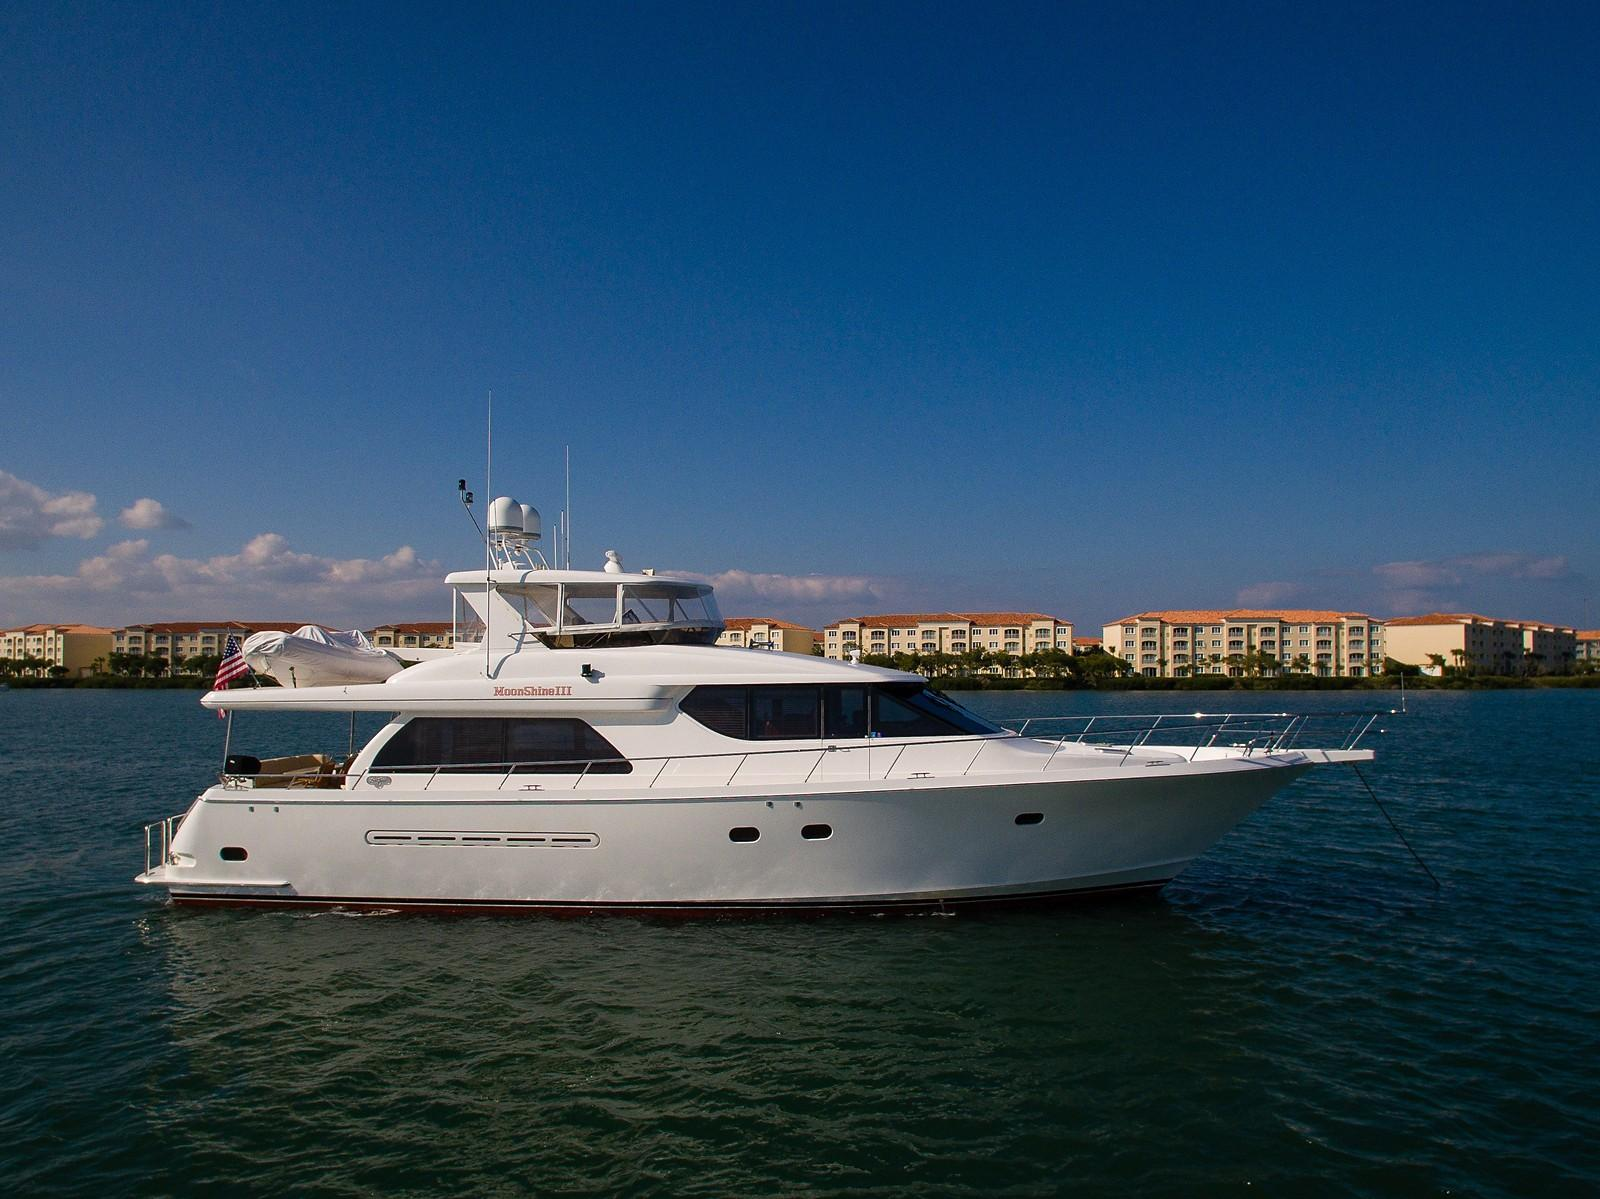 68 West Bay Motoryacht Sold By Yacht Broker Mike Kiely